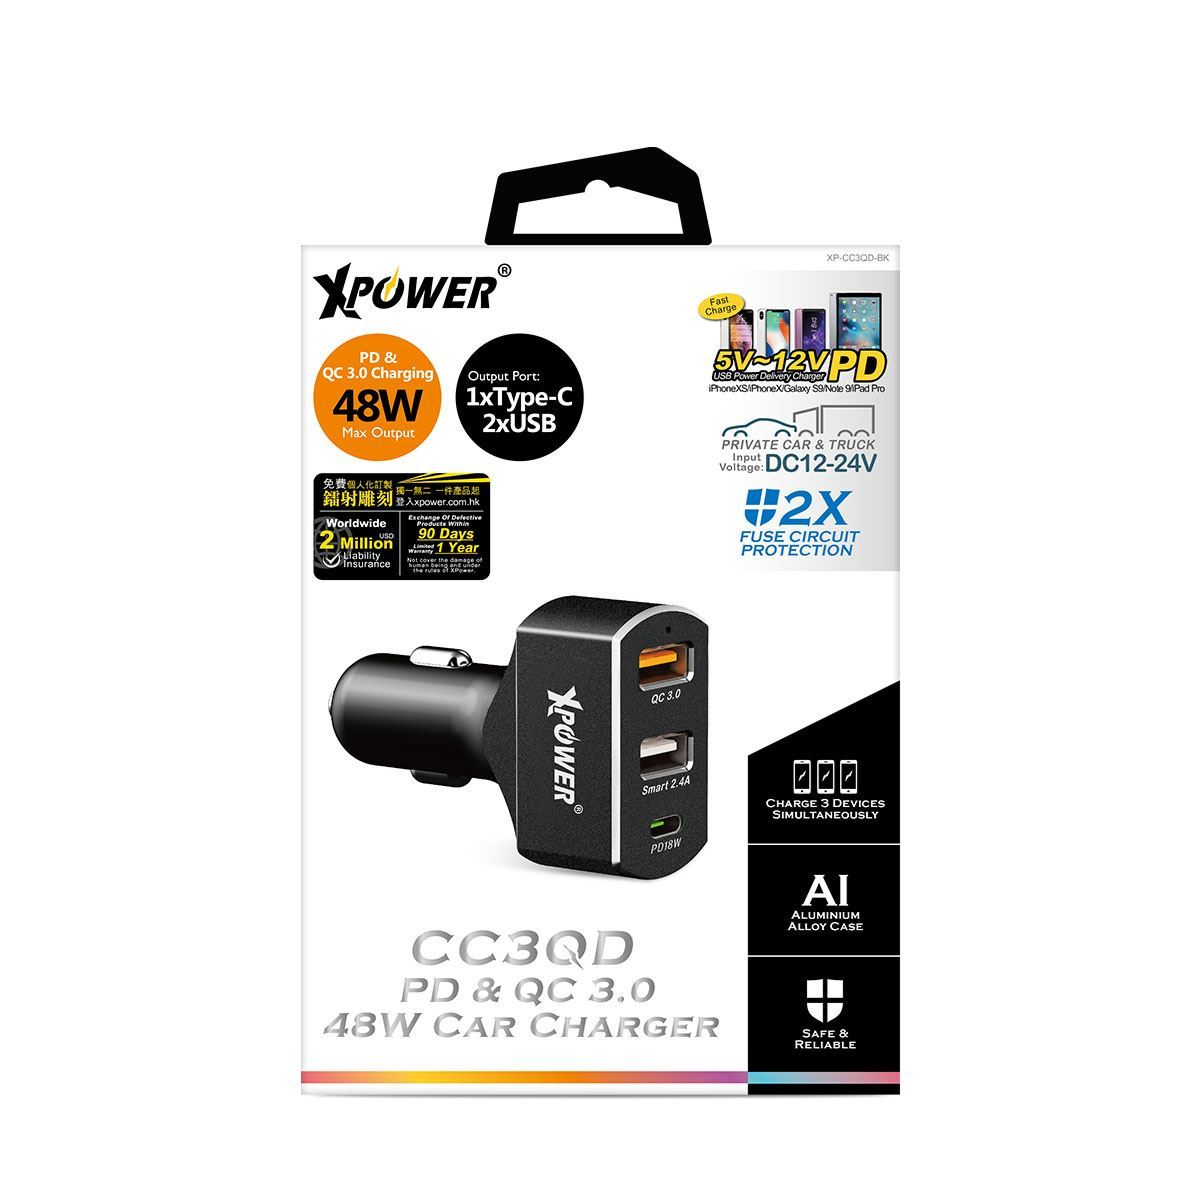 XPower PD 18W Quick Charge 3.0 Car Charger